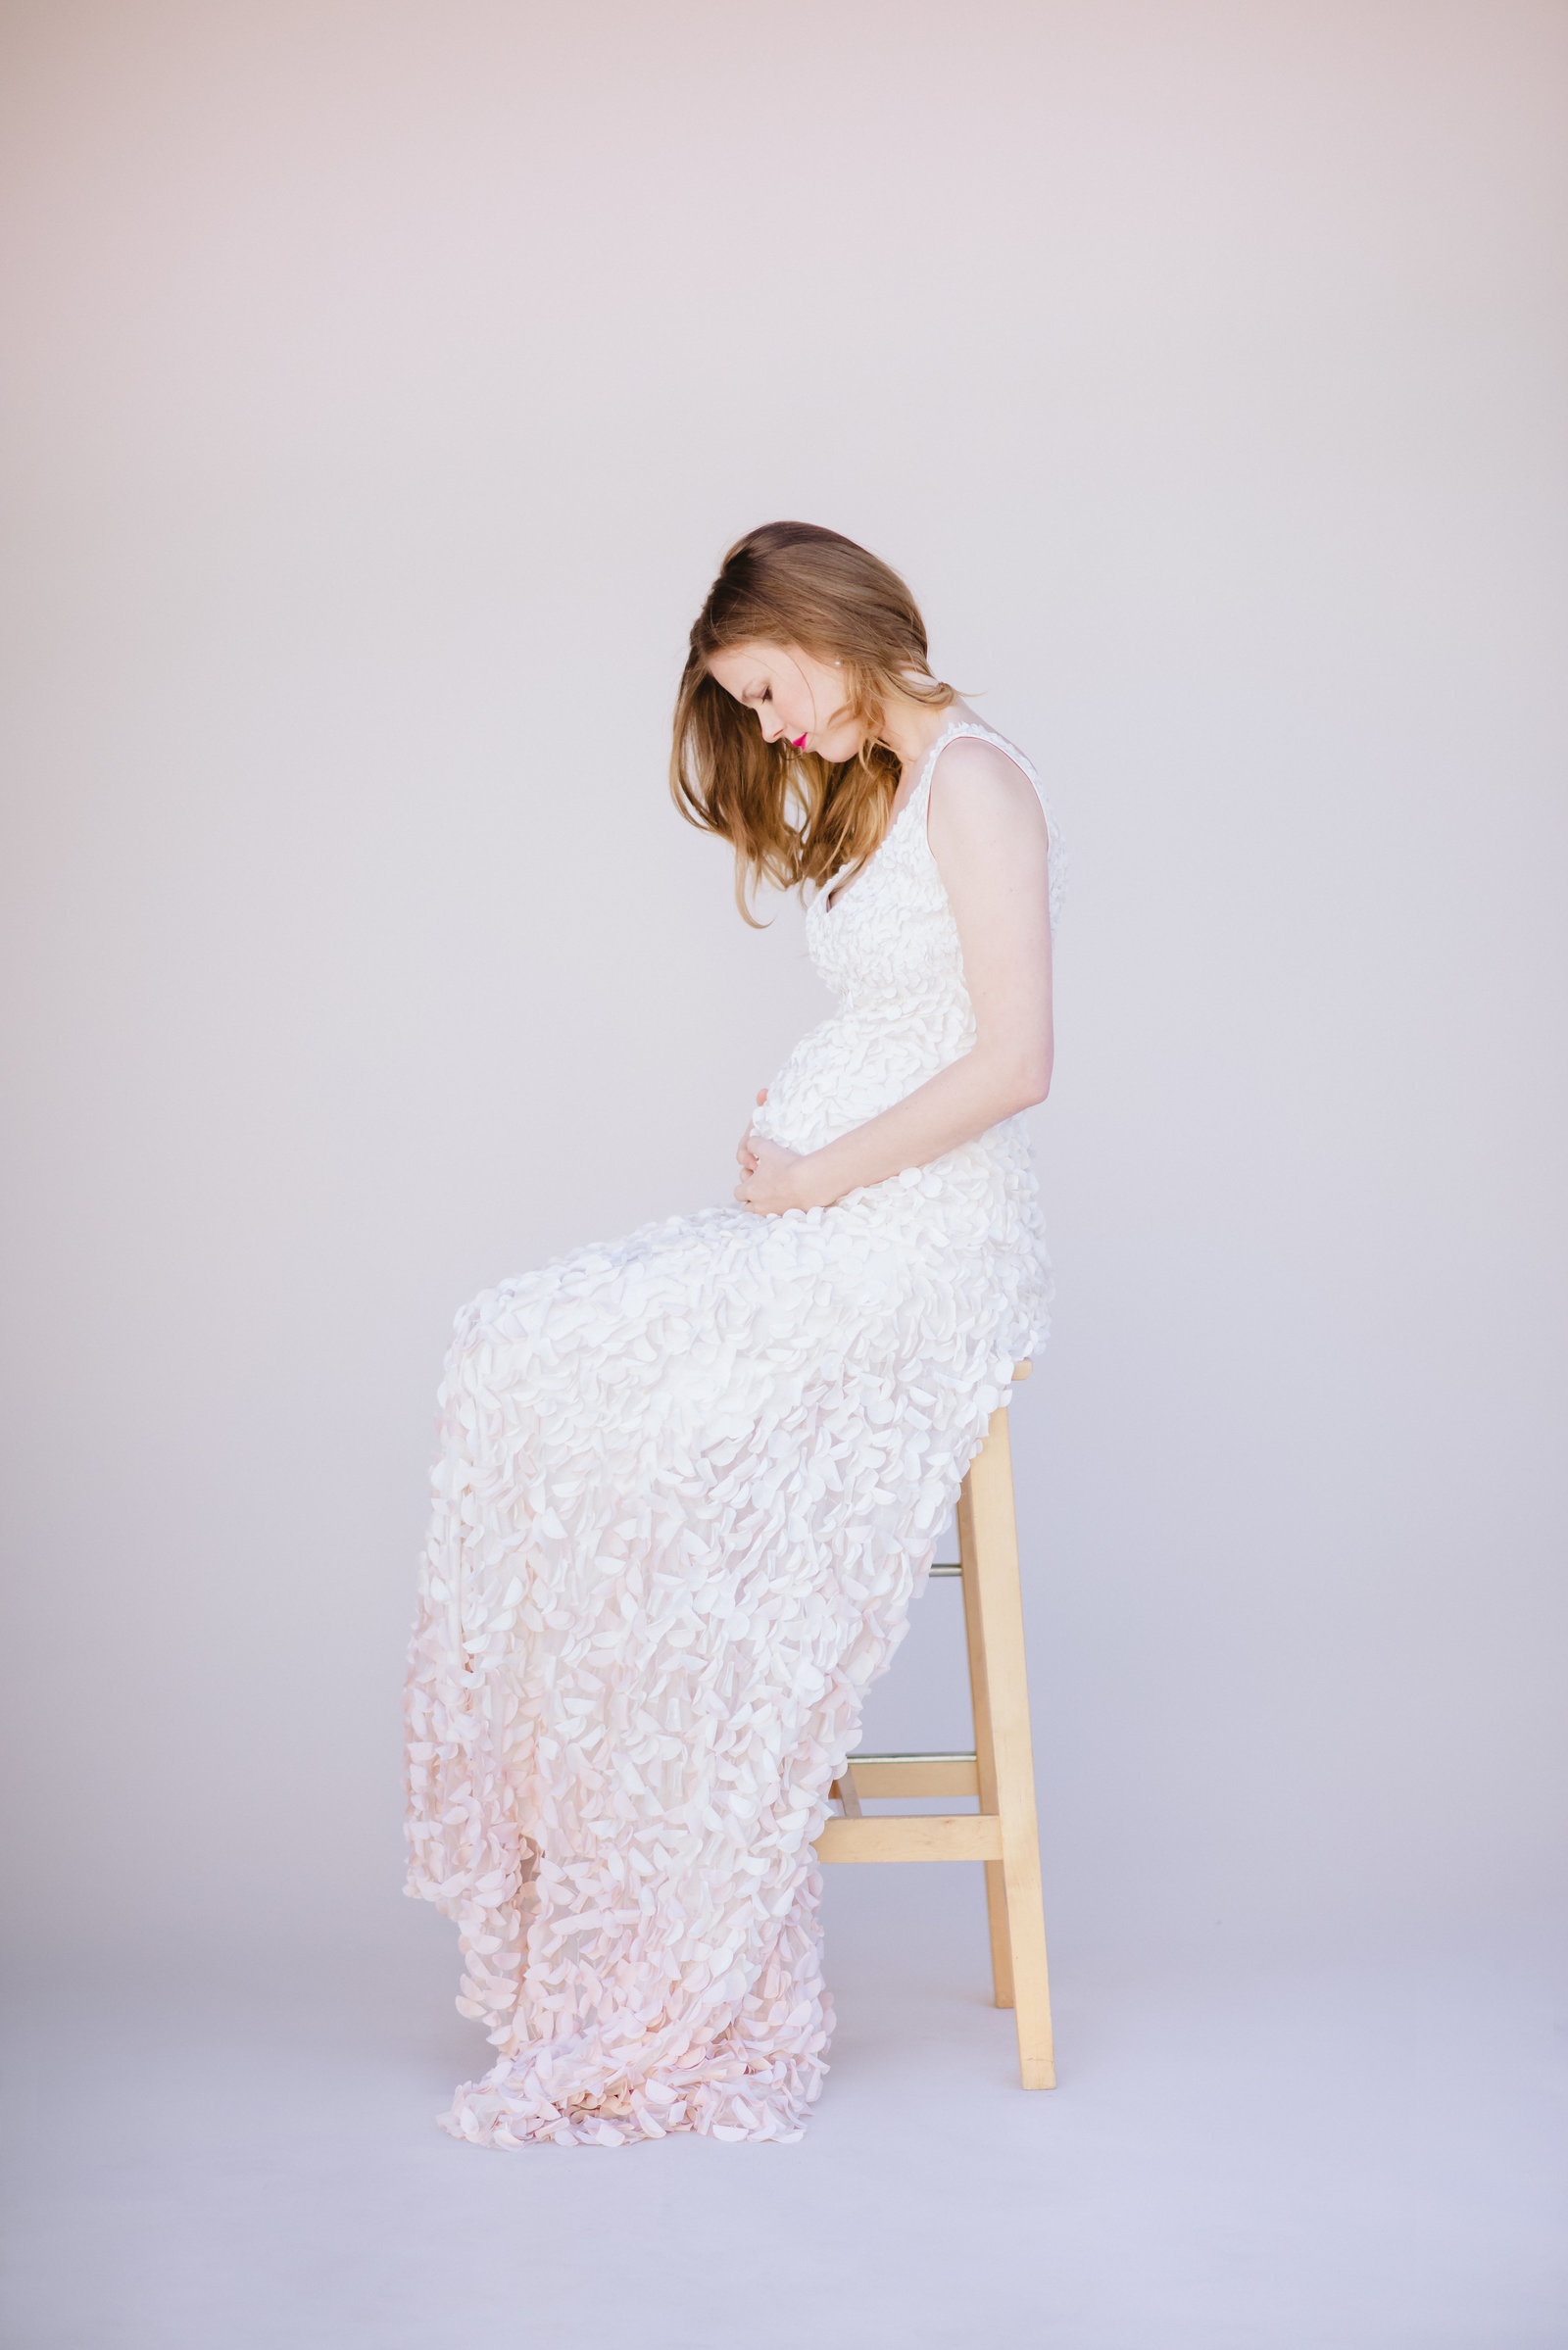 Studio Maternity on Film with Kent Avenue Photography featured on The Fount Collective